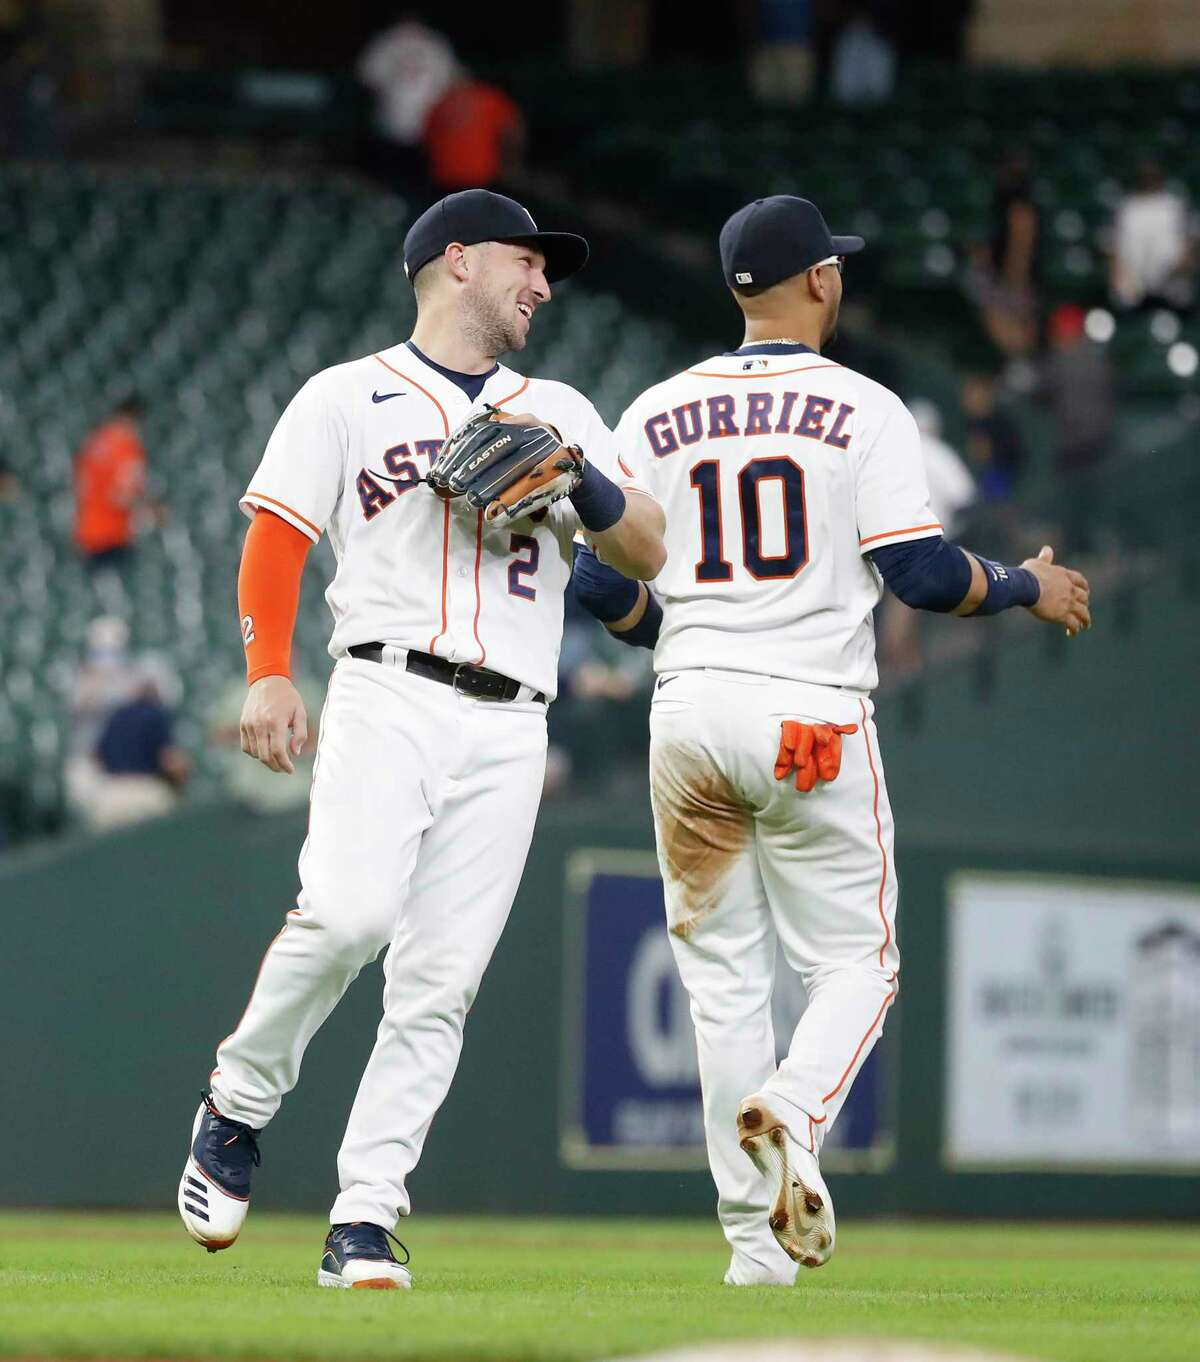 Houston Astros Alex Bregman (2) celebrates with Yuli Gurriel (10) after Seattle Mariners J.P. Crawford ground out to end an MLB baseball game at Minute Maid Park, Wednesday, April 28, 2021, in Houston. Astros came from behind to beat the Seattle Mariners 7-5.